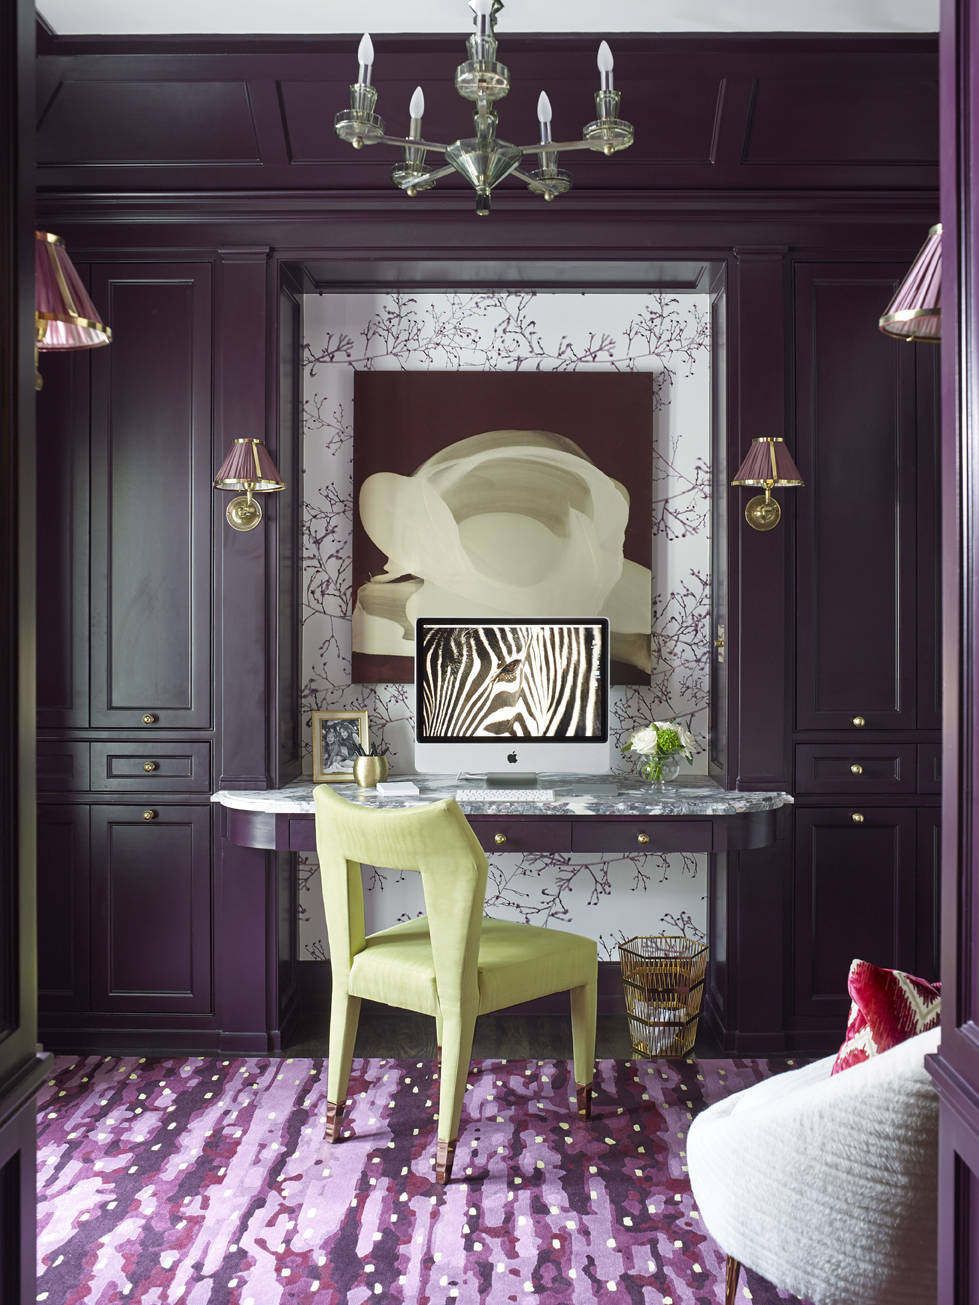 Built-in cabinetry in eggplant-colored paintmakes the home office stylish and organized.